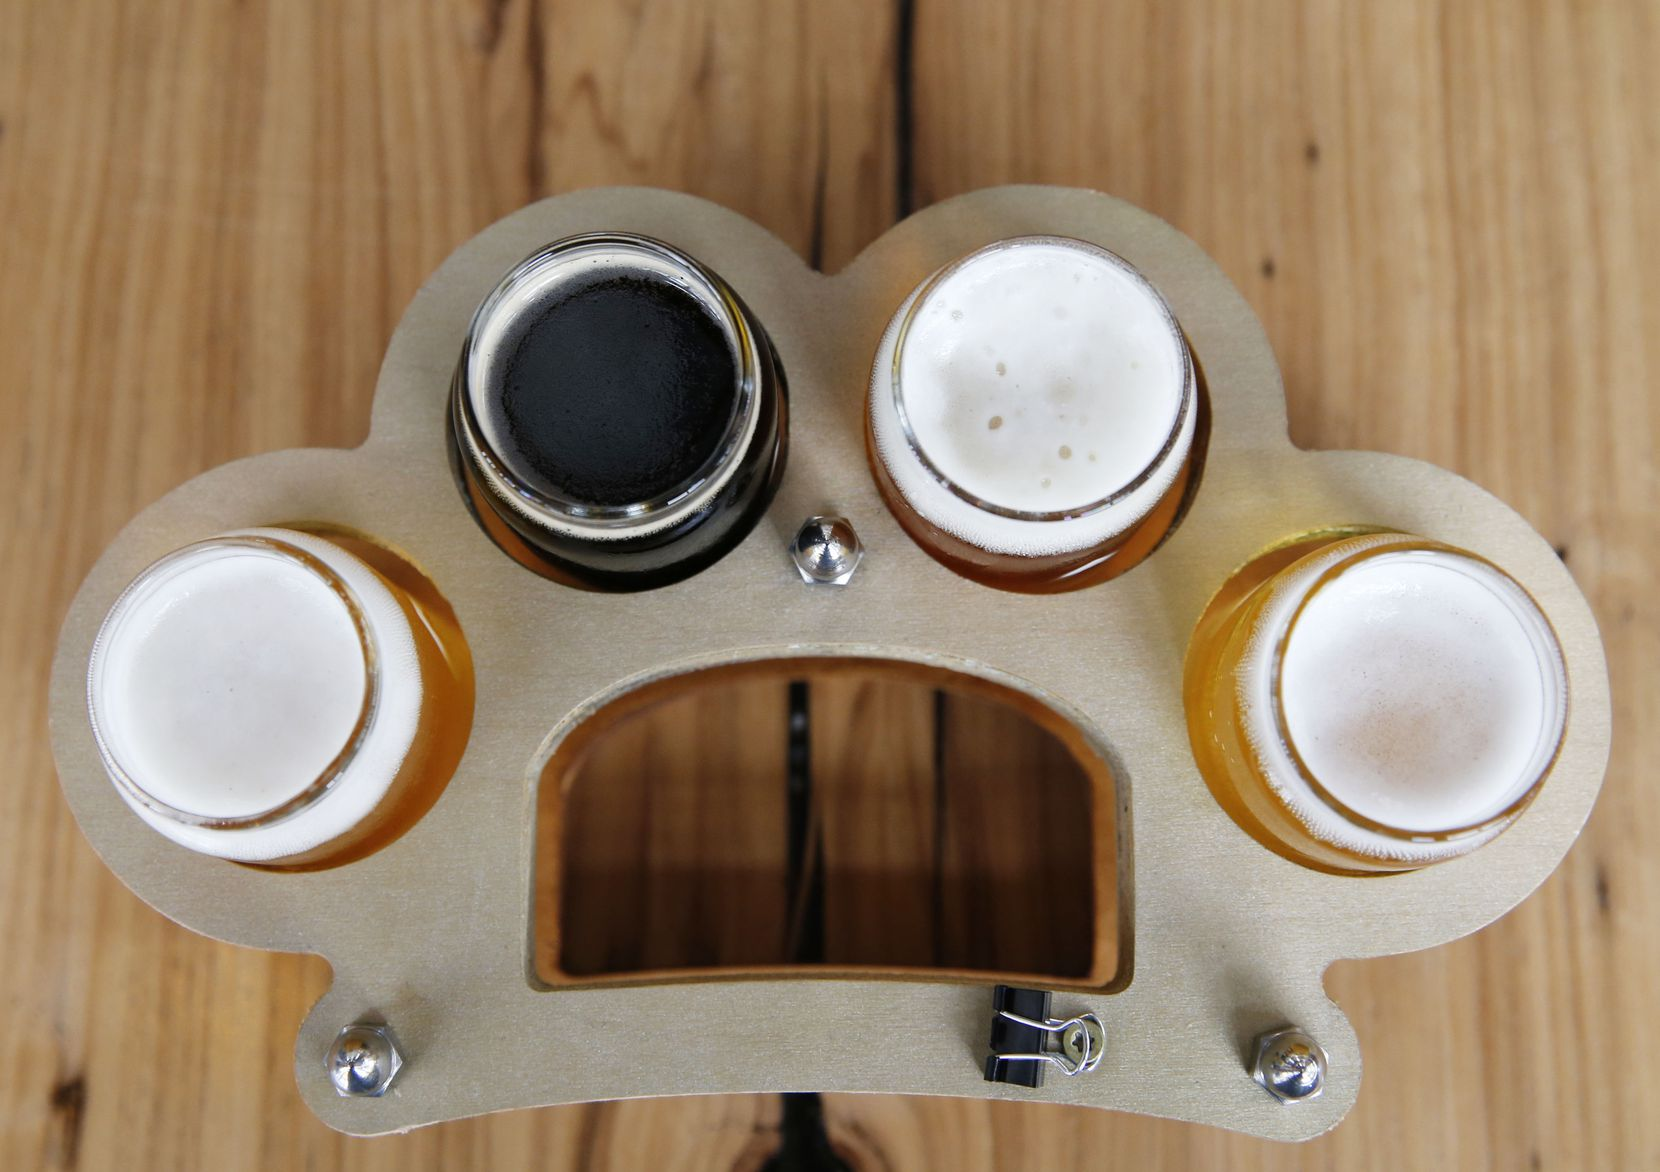 Flights of beer come served in a tray shaped like brass knuckles at Austin Beerworks.